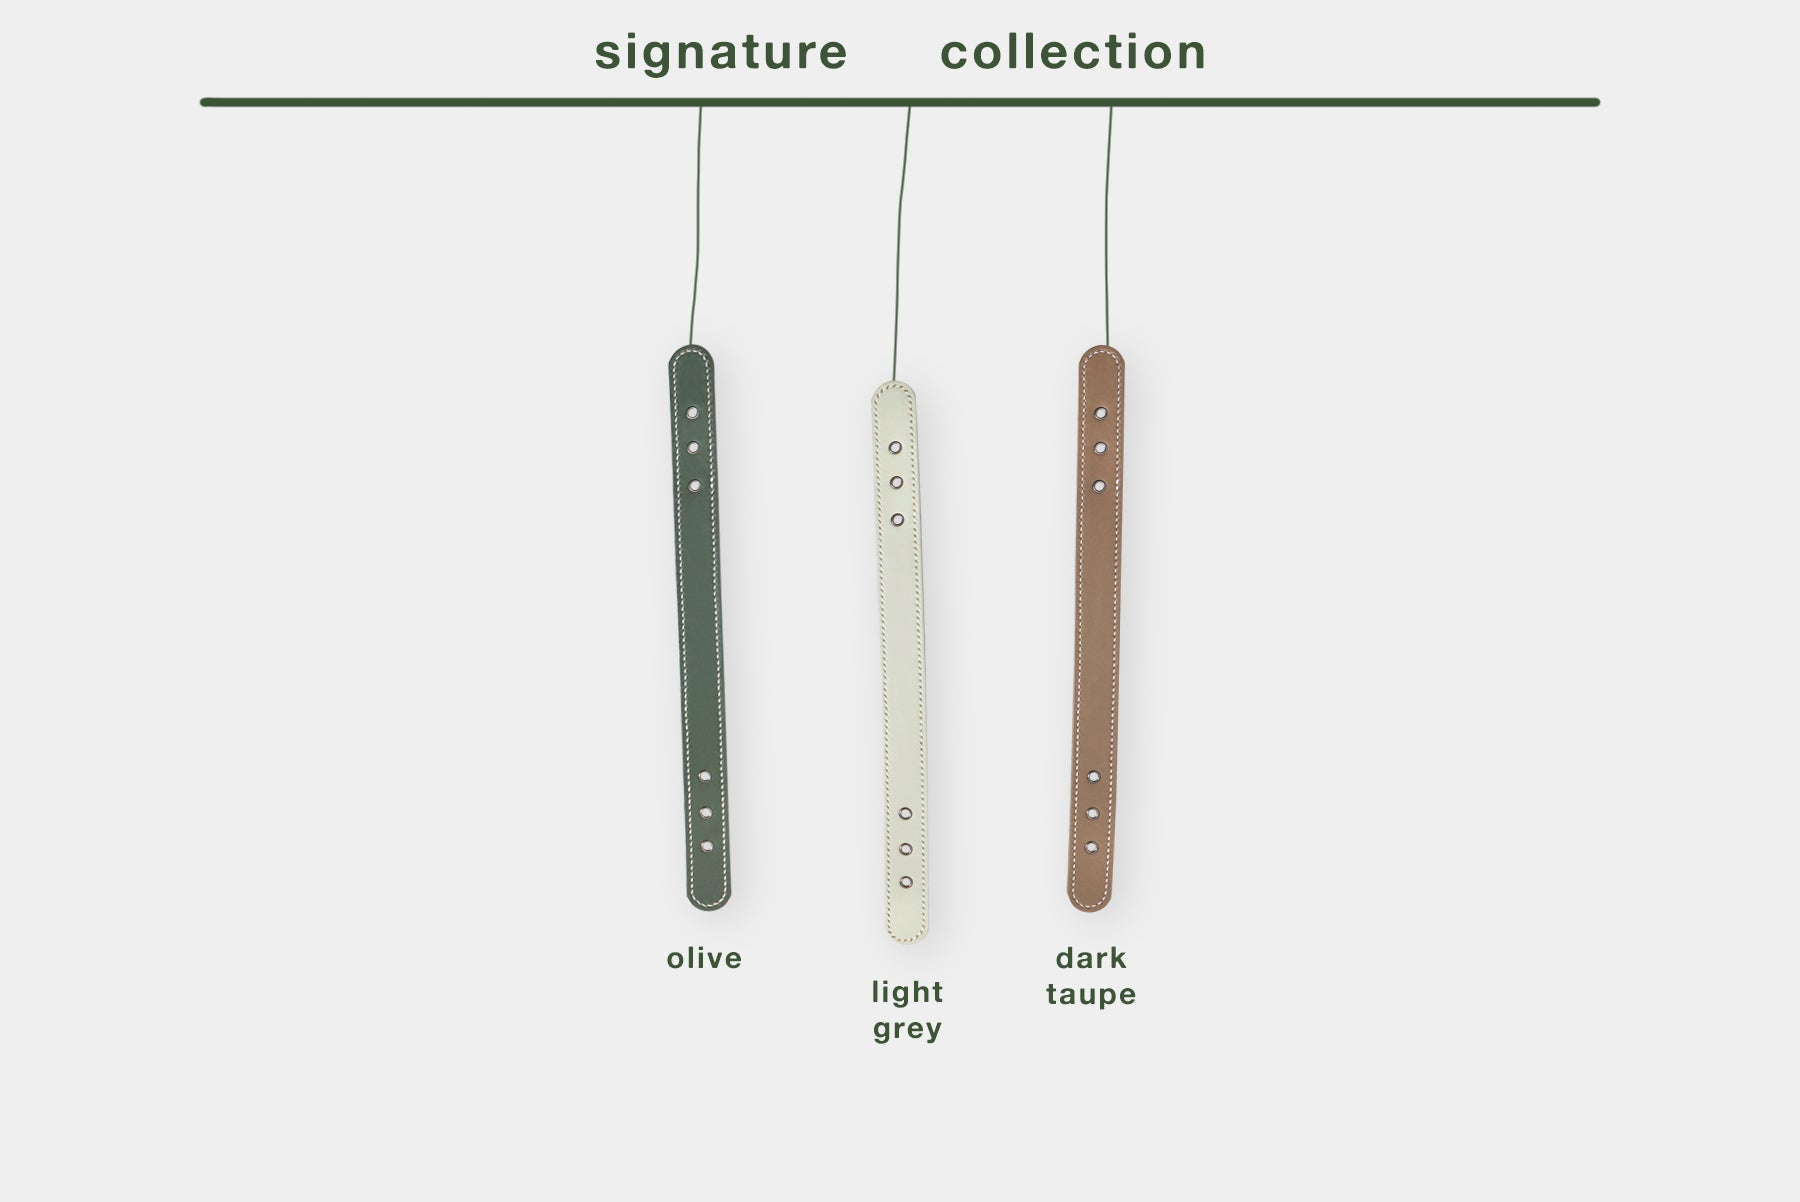 color chart - signature collection